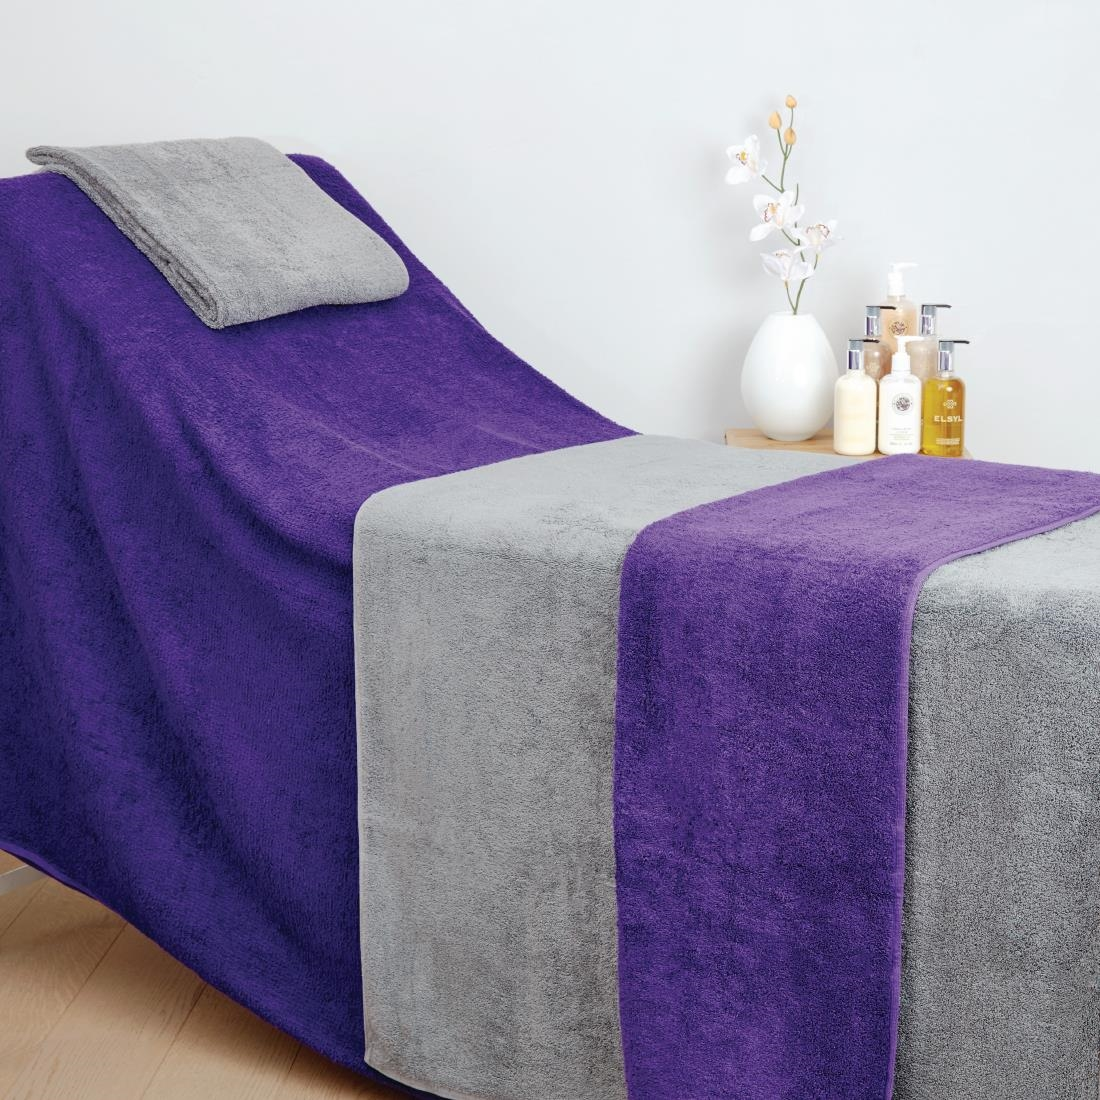 Image of Mitre Comfort Enigma Massage Couch Cover Purple